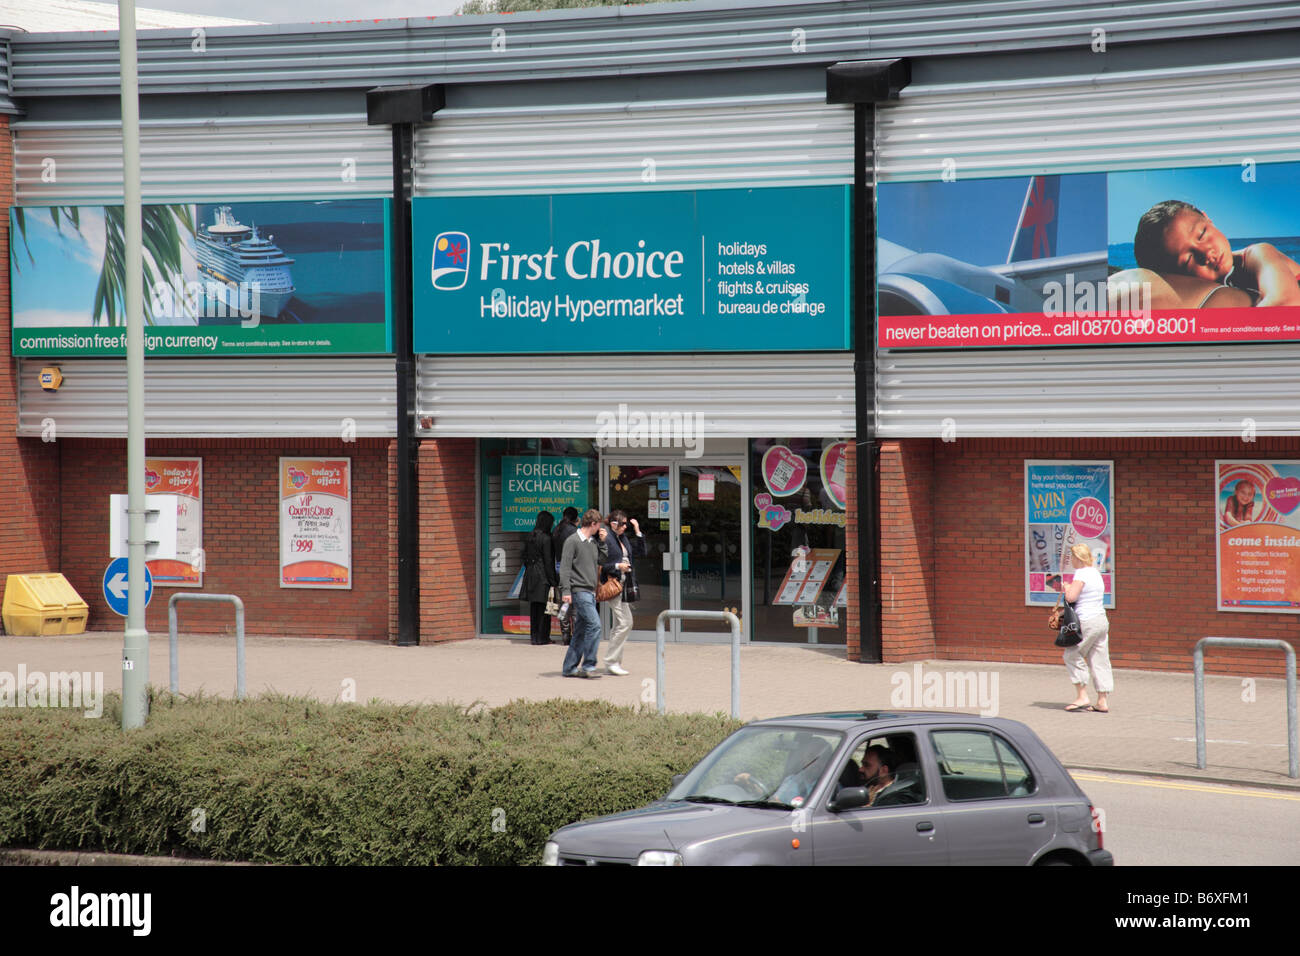 awesome first choice retail #1: First Choice Holiday Hypermarket, Festival Retail Park, Stoke-on-Trent